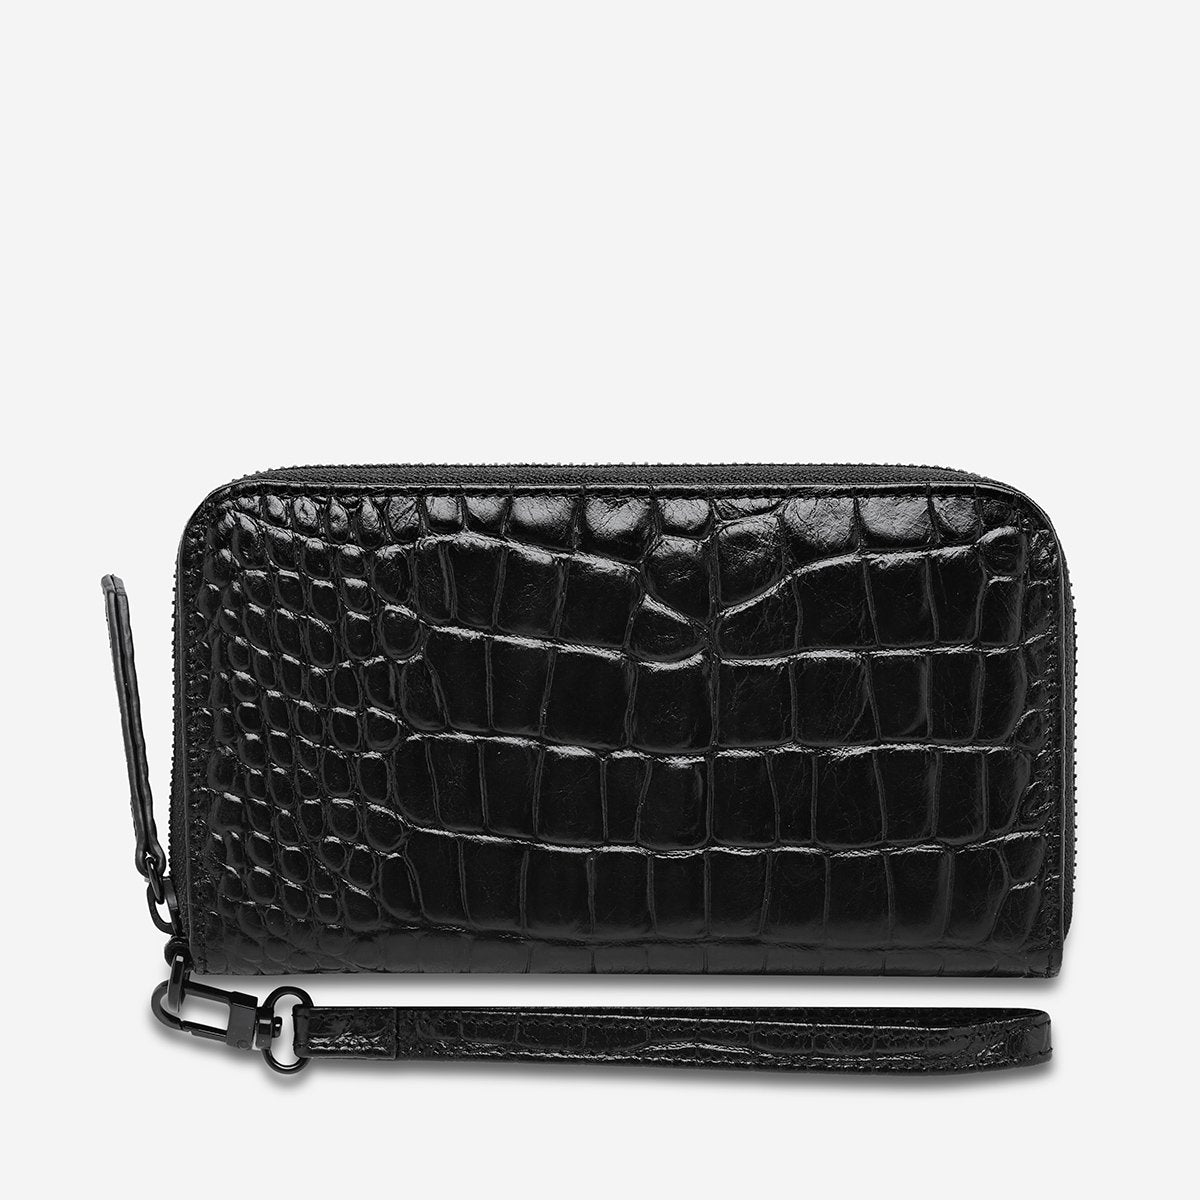 STATUS ANXIETY  //  Moving On Wallet BLACK CROC